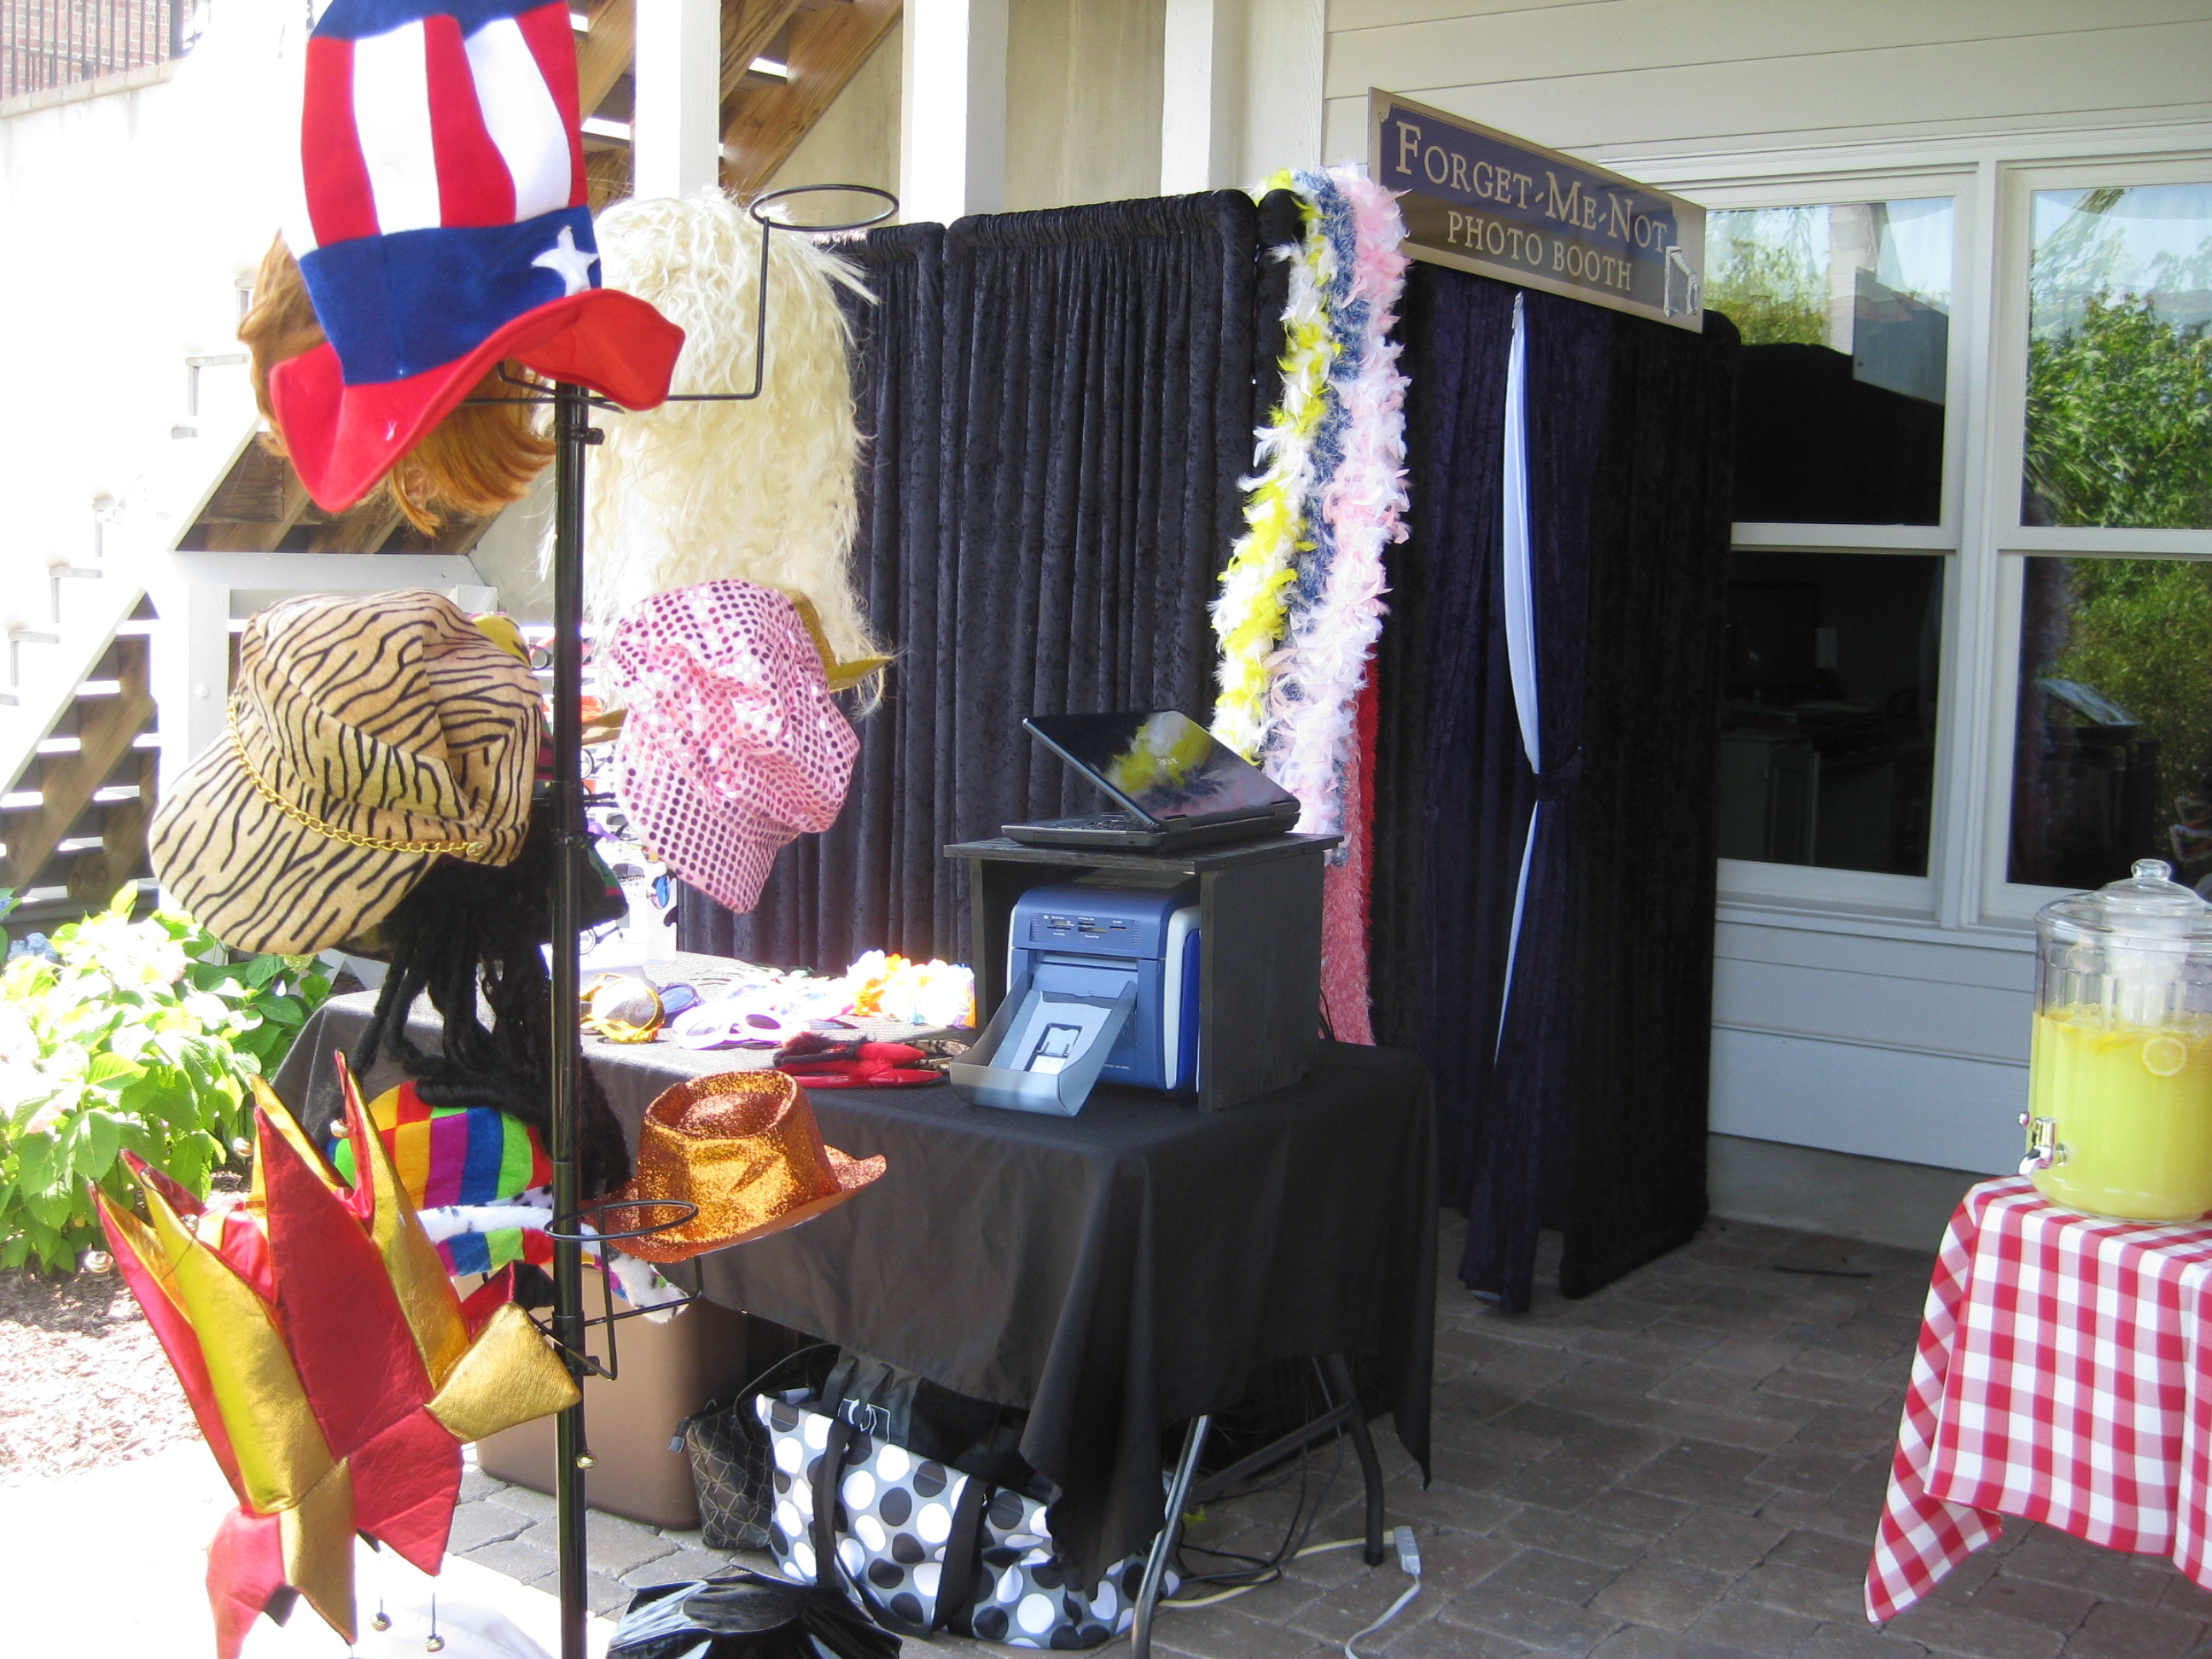 Photo Booth Ideas For Graduation Party  1000 images about Graduation on Pinterest